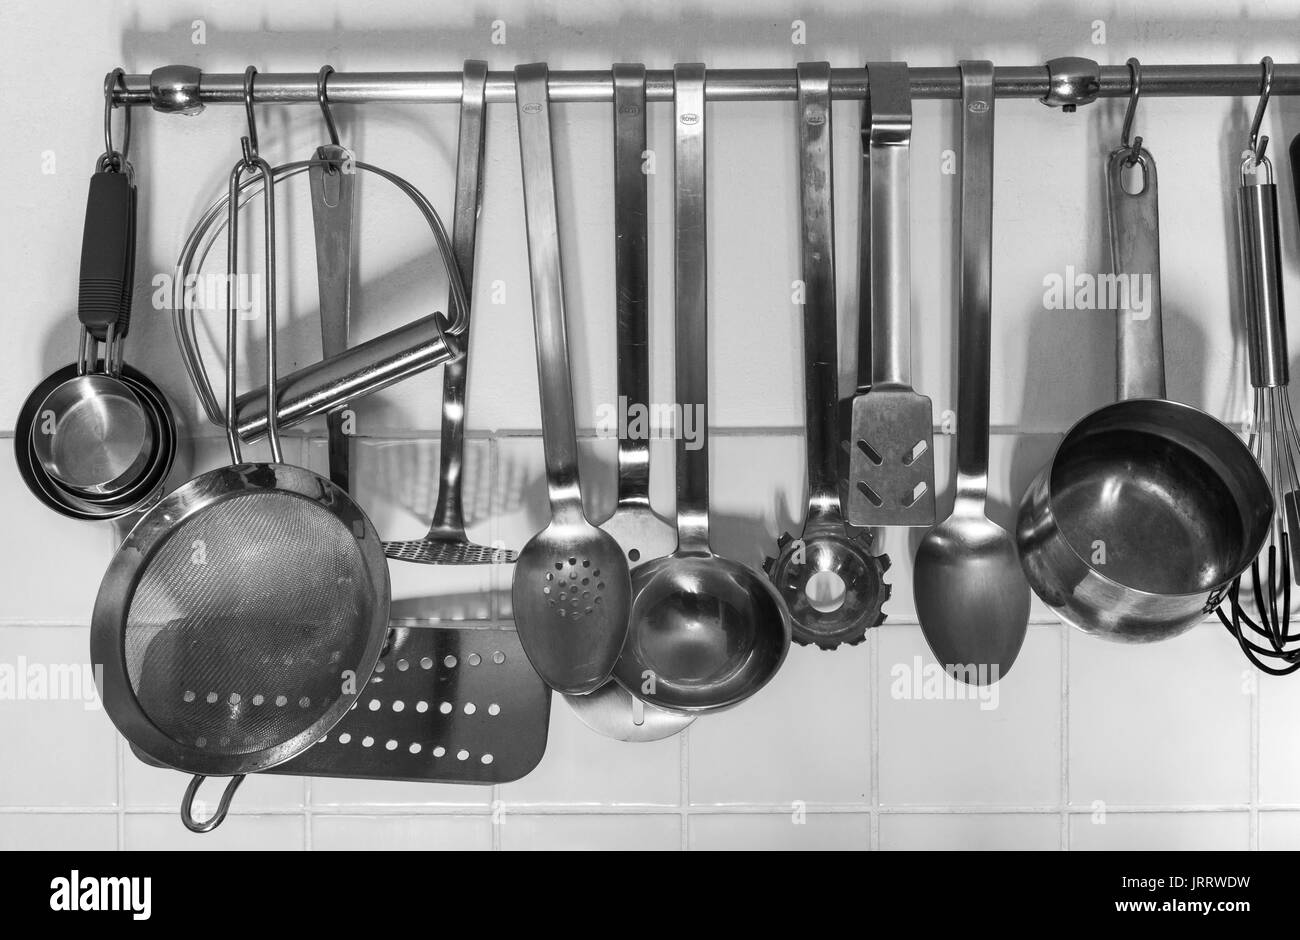 Various kitchen utensils haning from a rack - Stock Image